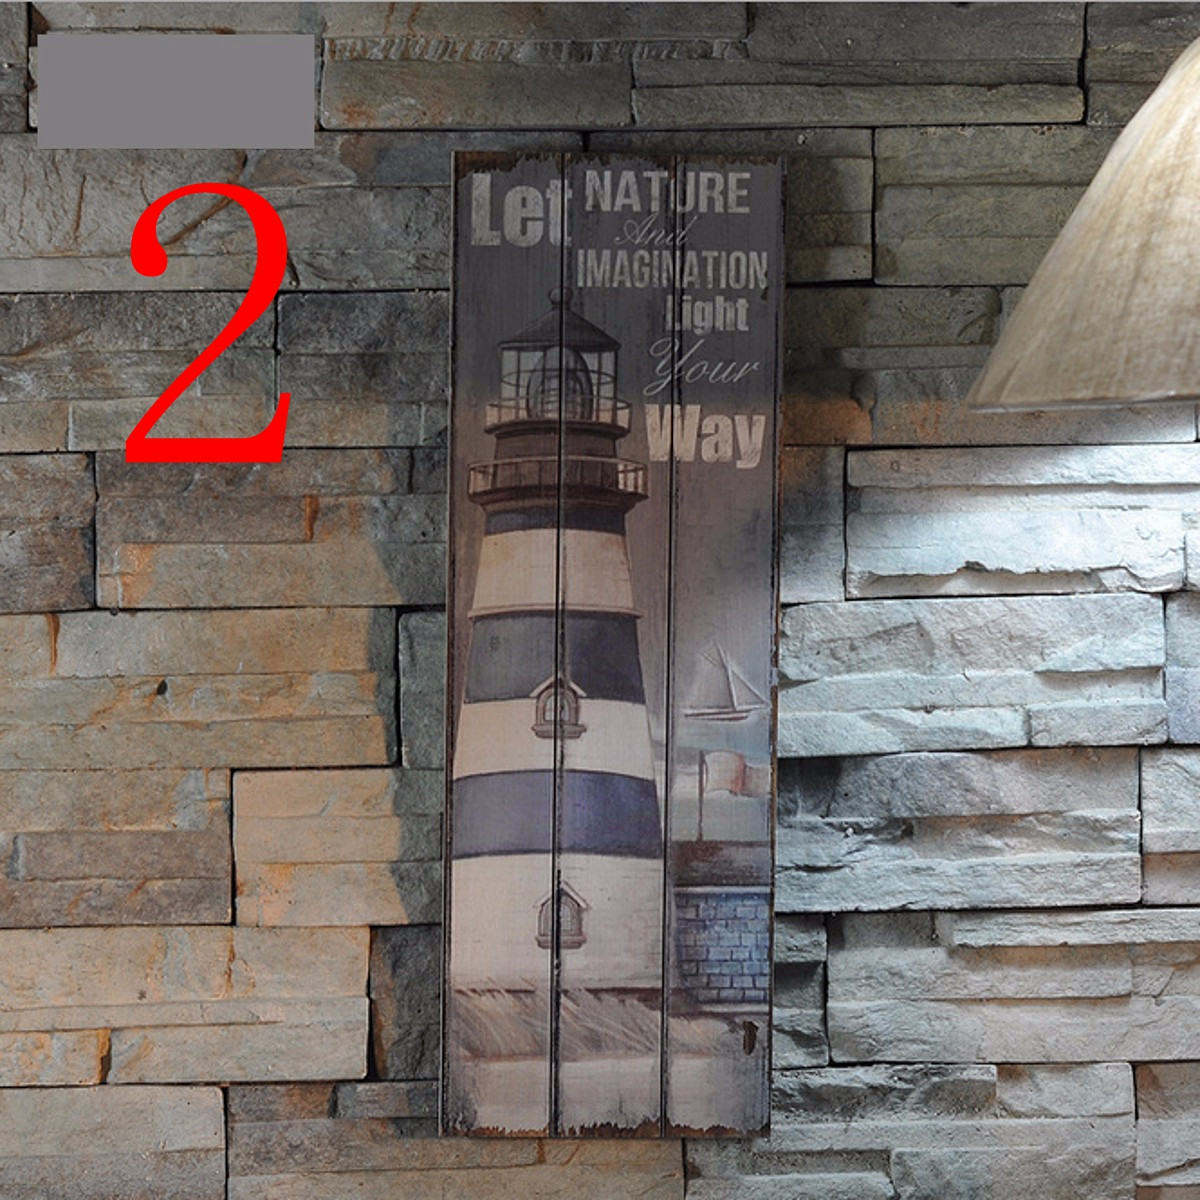 Us 18 79 Rustic Wooden Sign Plaque Wall Art Picture Nautical Decor Anchor Lighthouse Design For Home Bar Decor Wood Crafts 20cm X 60cm In Figurines